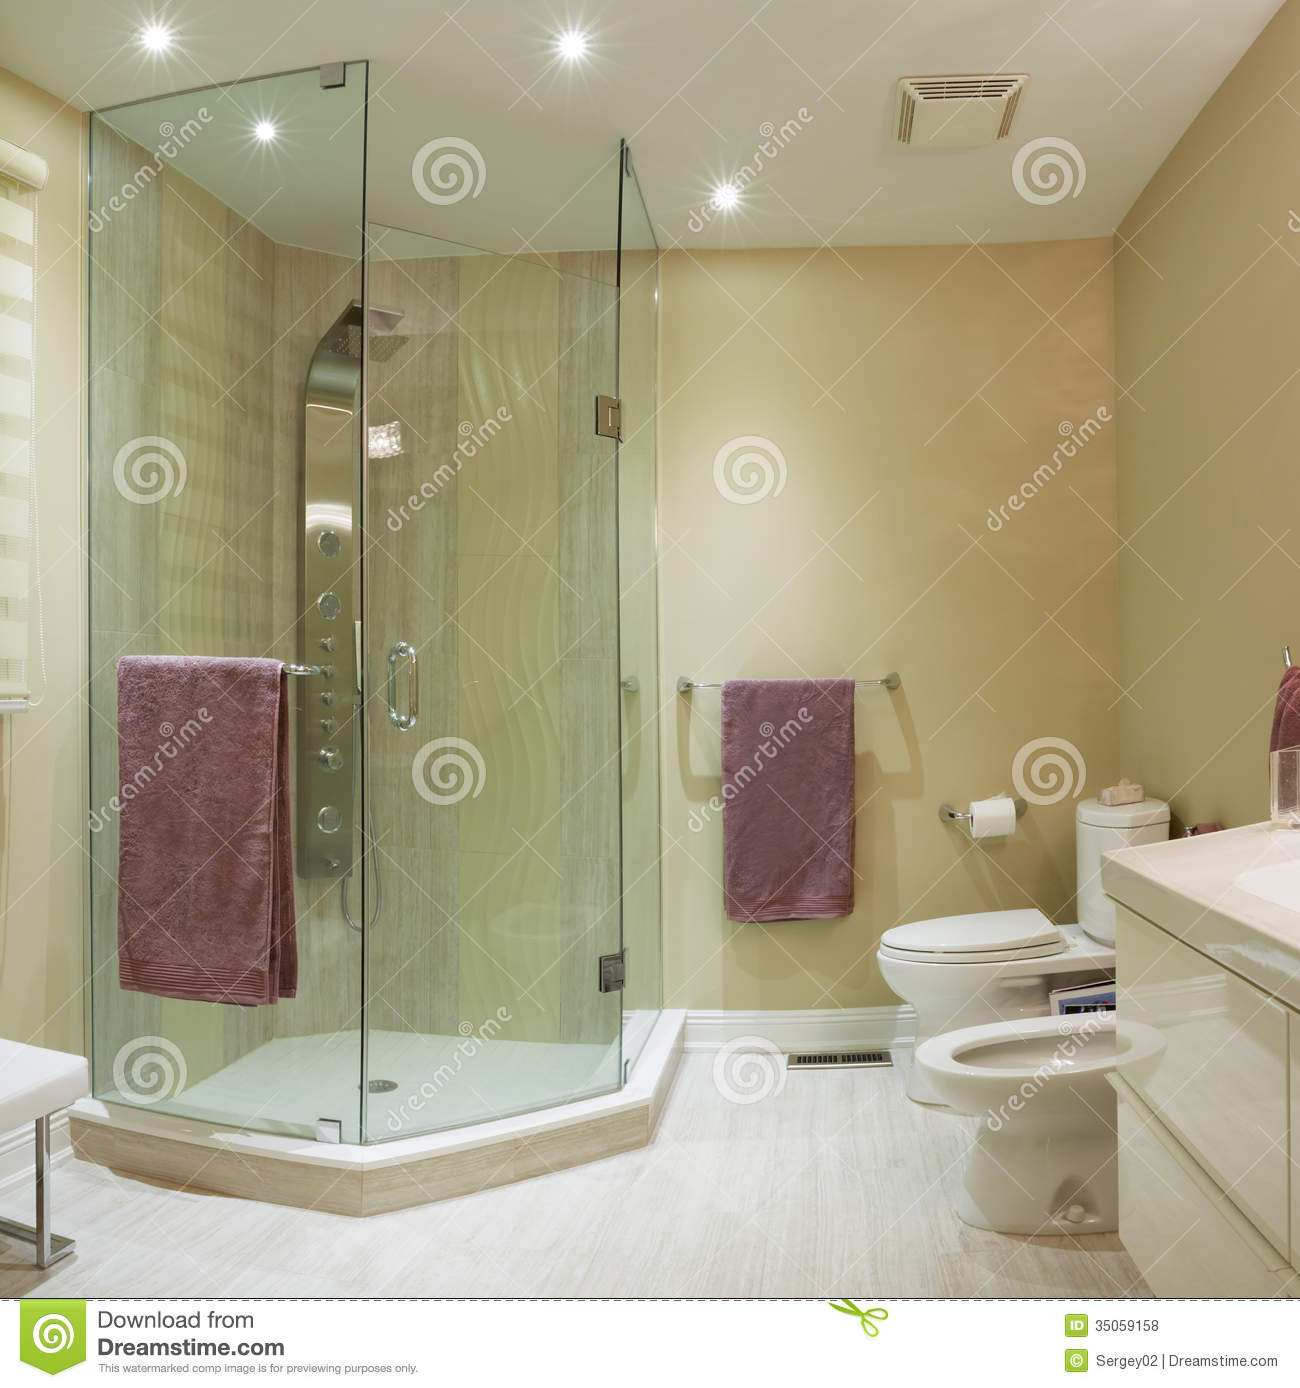 Home Decor Interiors Bathroom : Interior design royalty free stock photos image